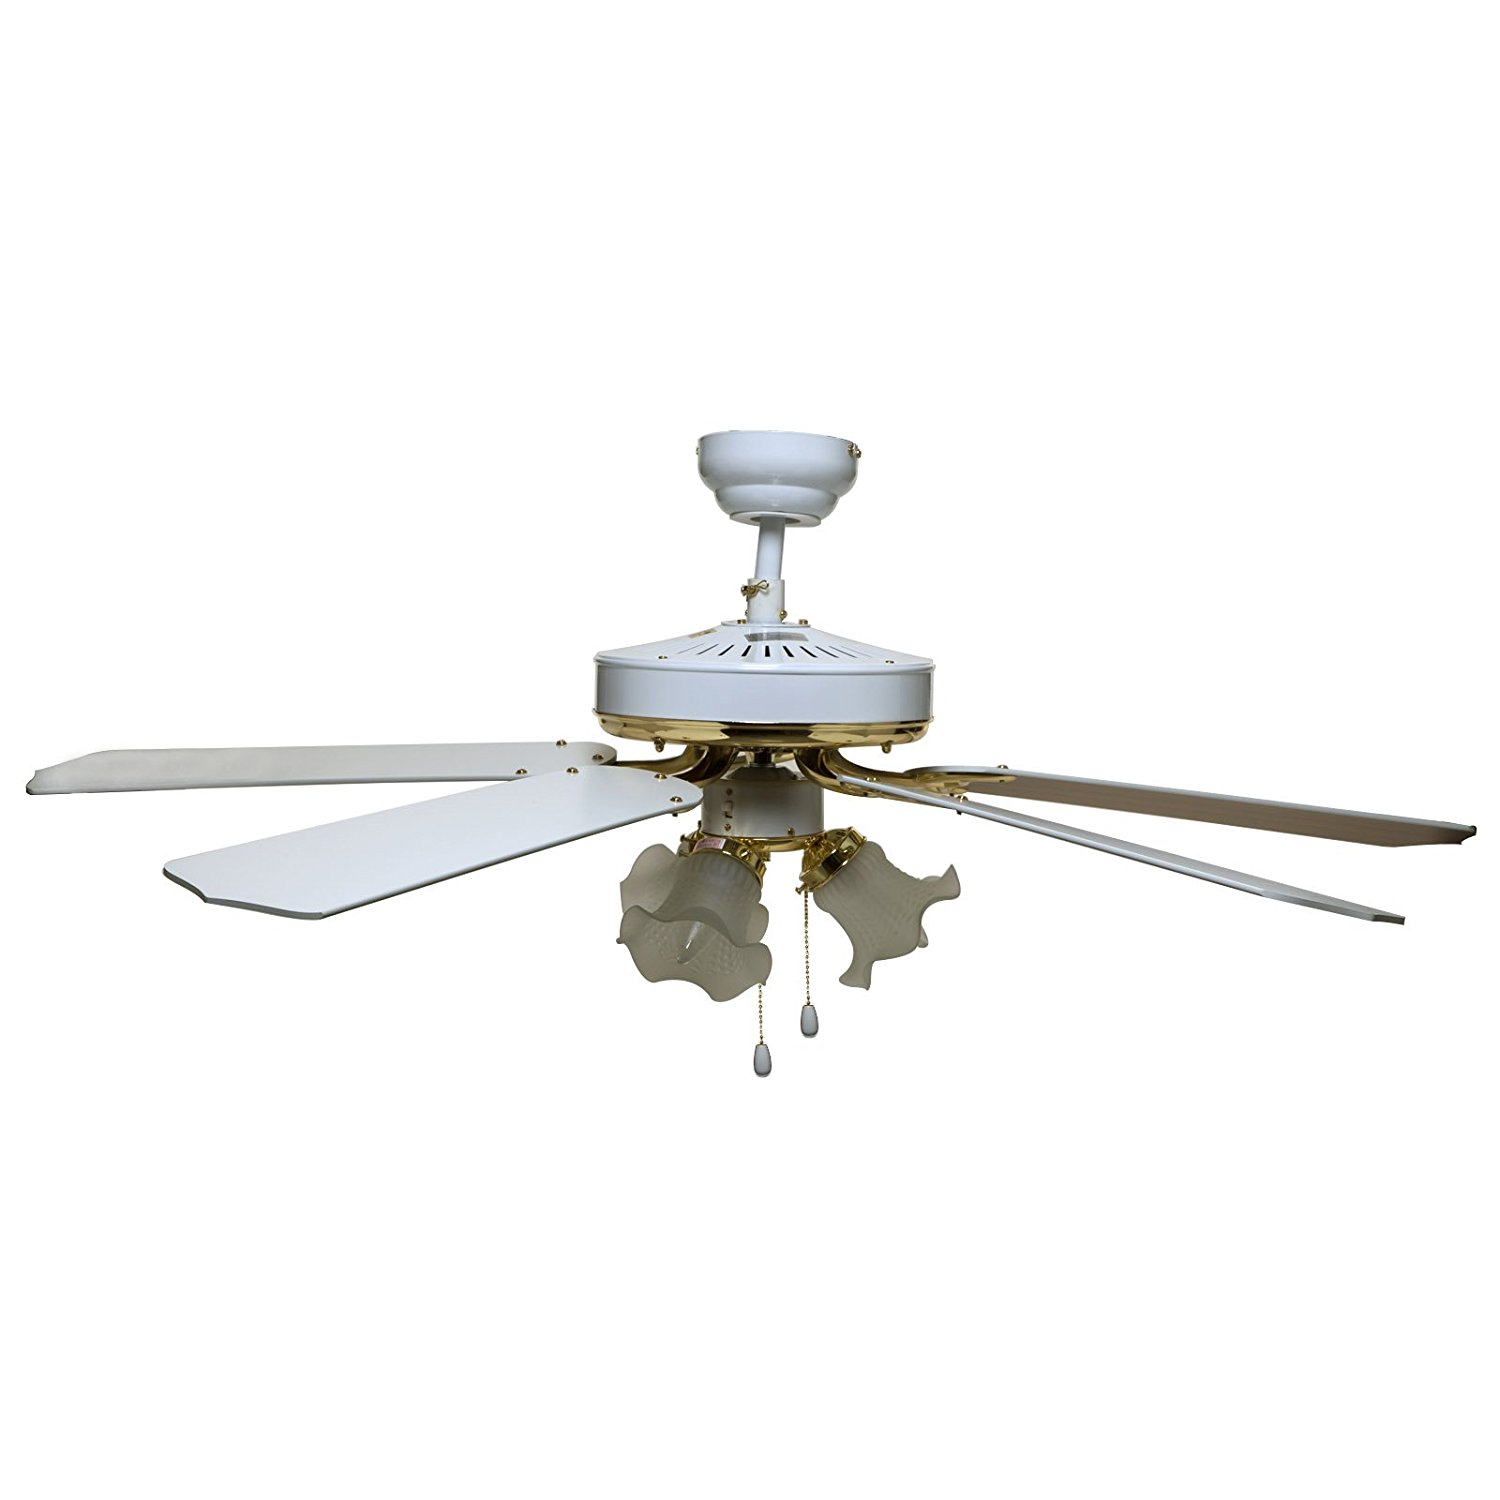 10 things to consider before installing Boston harbor ceiling fans